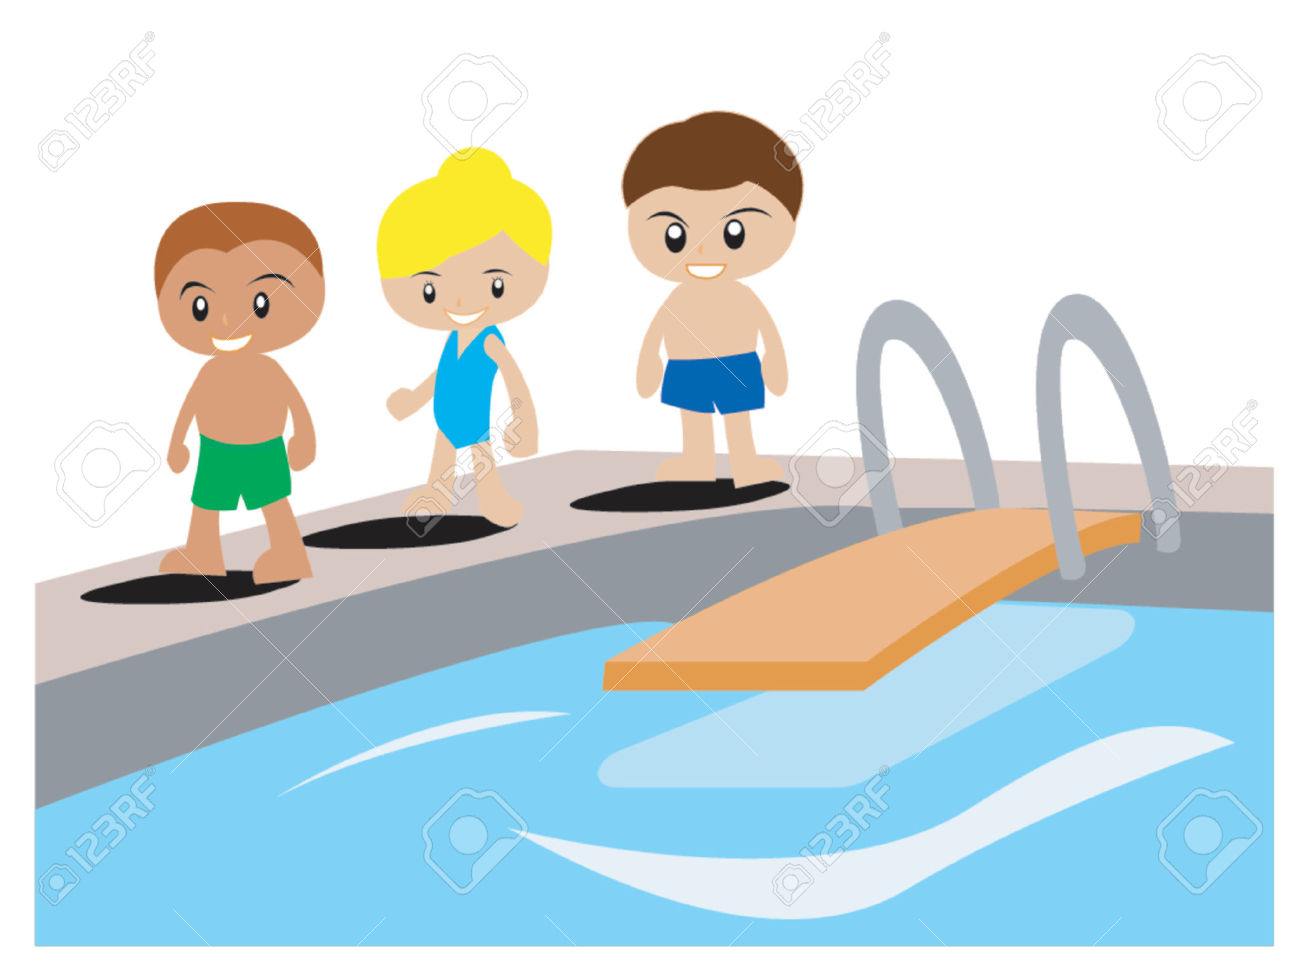 Boys Swimming Pool Clipart-Boys swimming pool clipart-6